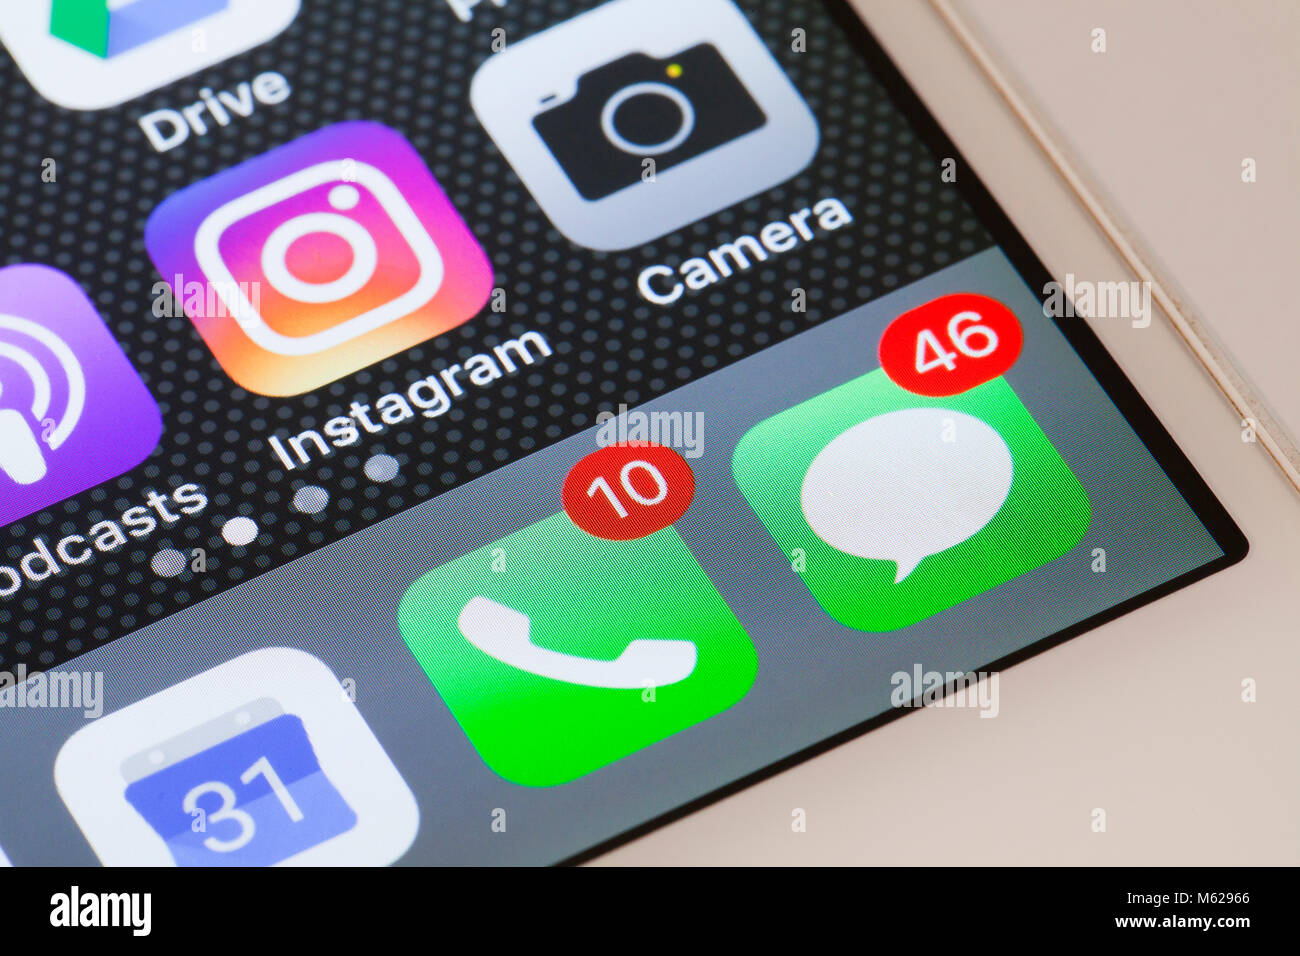 Notification badges (red dot) showing high number of missed calls and text messages on iPhone 5s home screen - USA - Stock Image